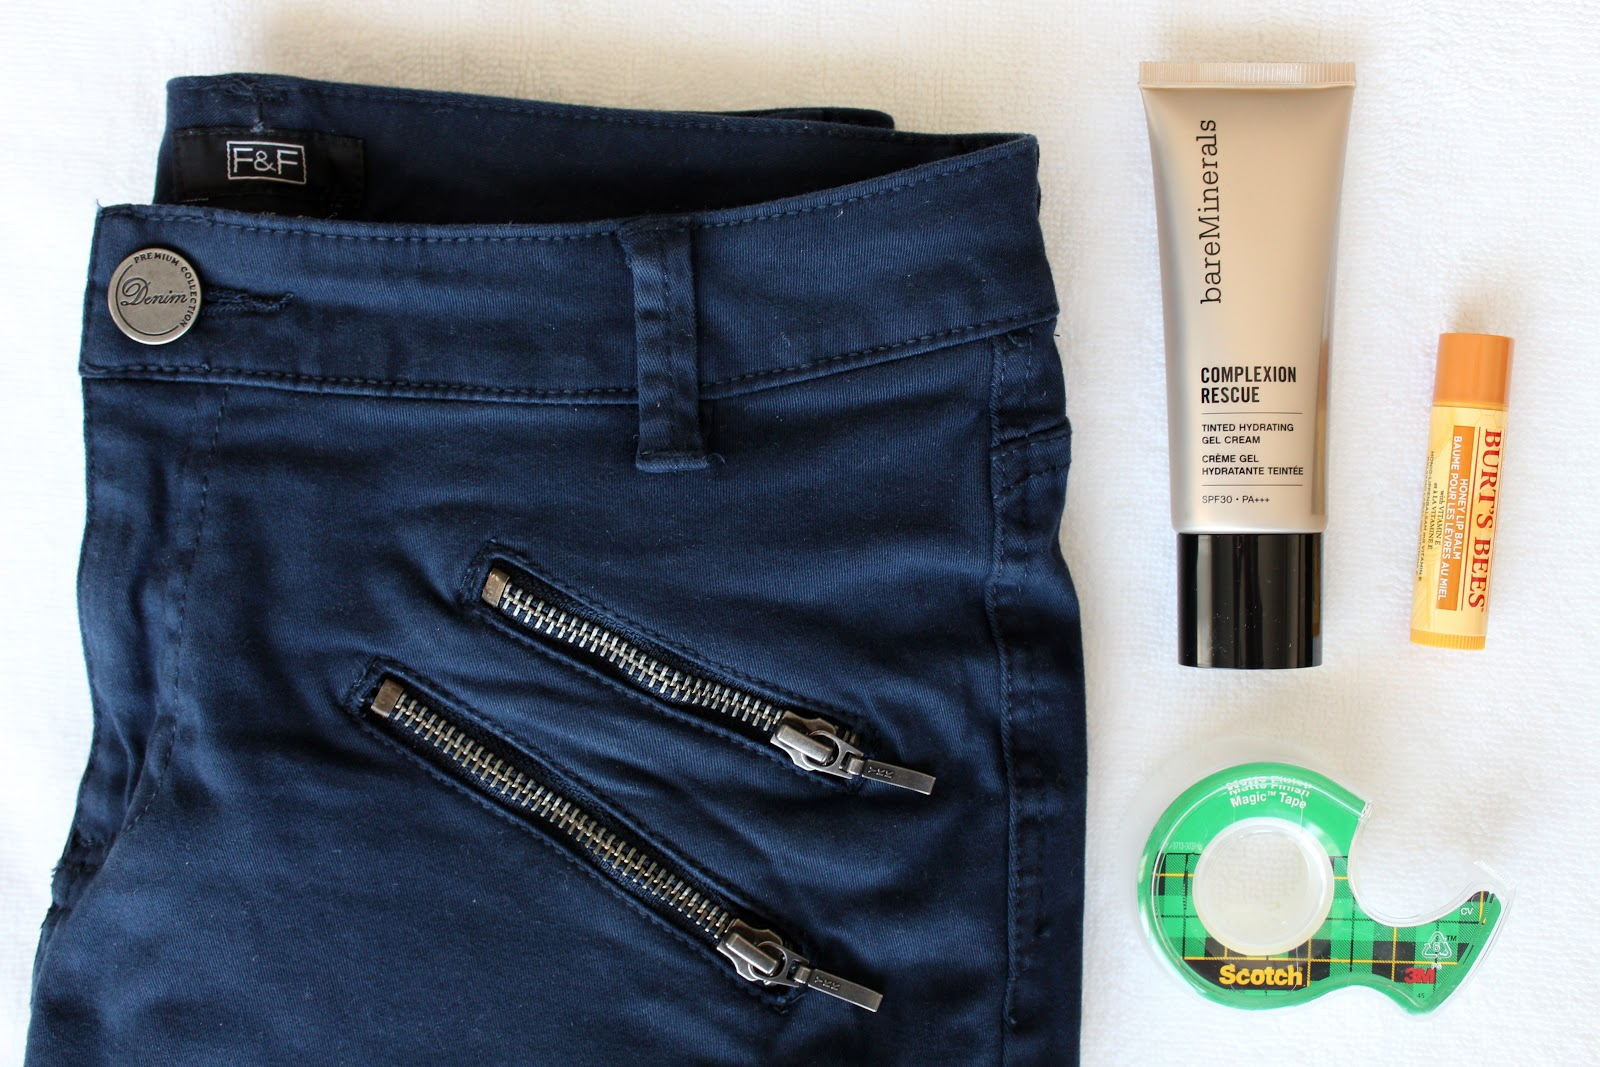 Bare Minerals Complexion Rescue, Burt's Bees Lip Balm, Scotch Tape, Florence & Fred Trousers